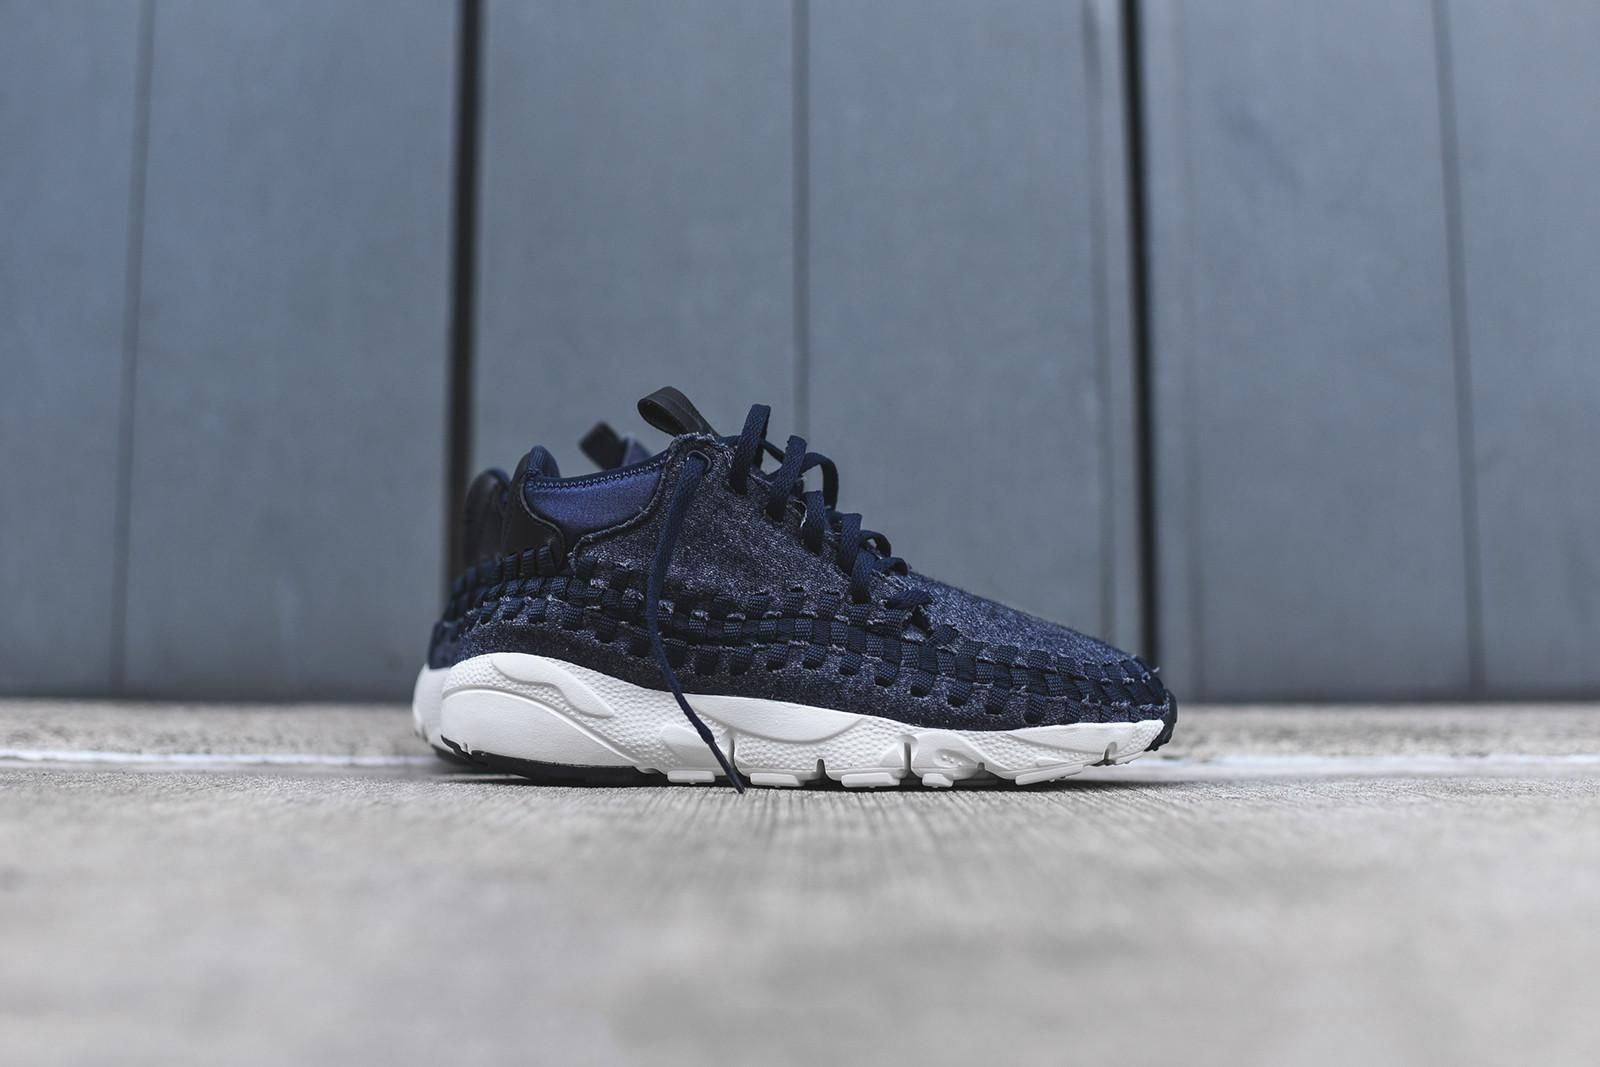 The Nike Air Footscape Woven SE Obsidian Is Out Now